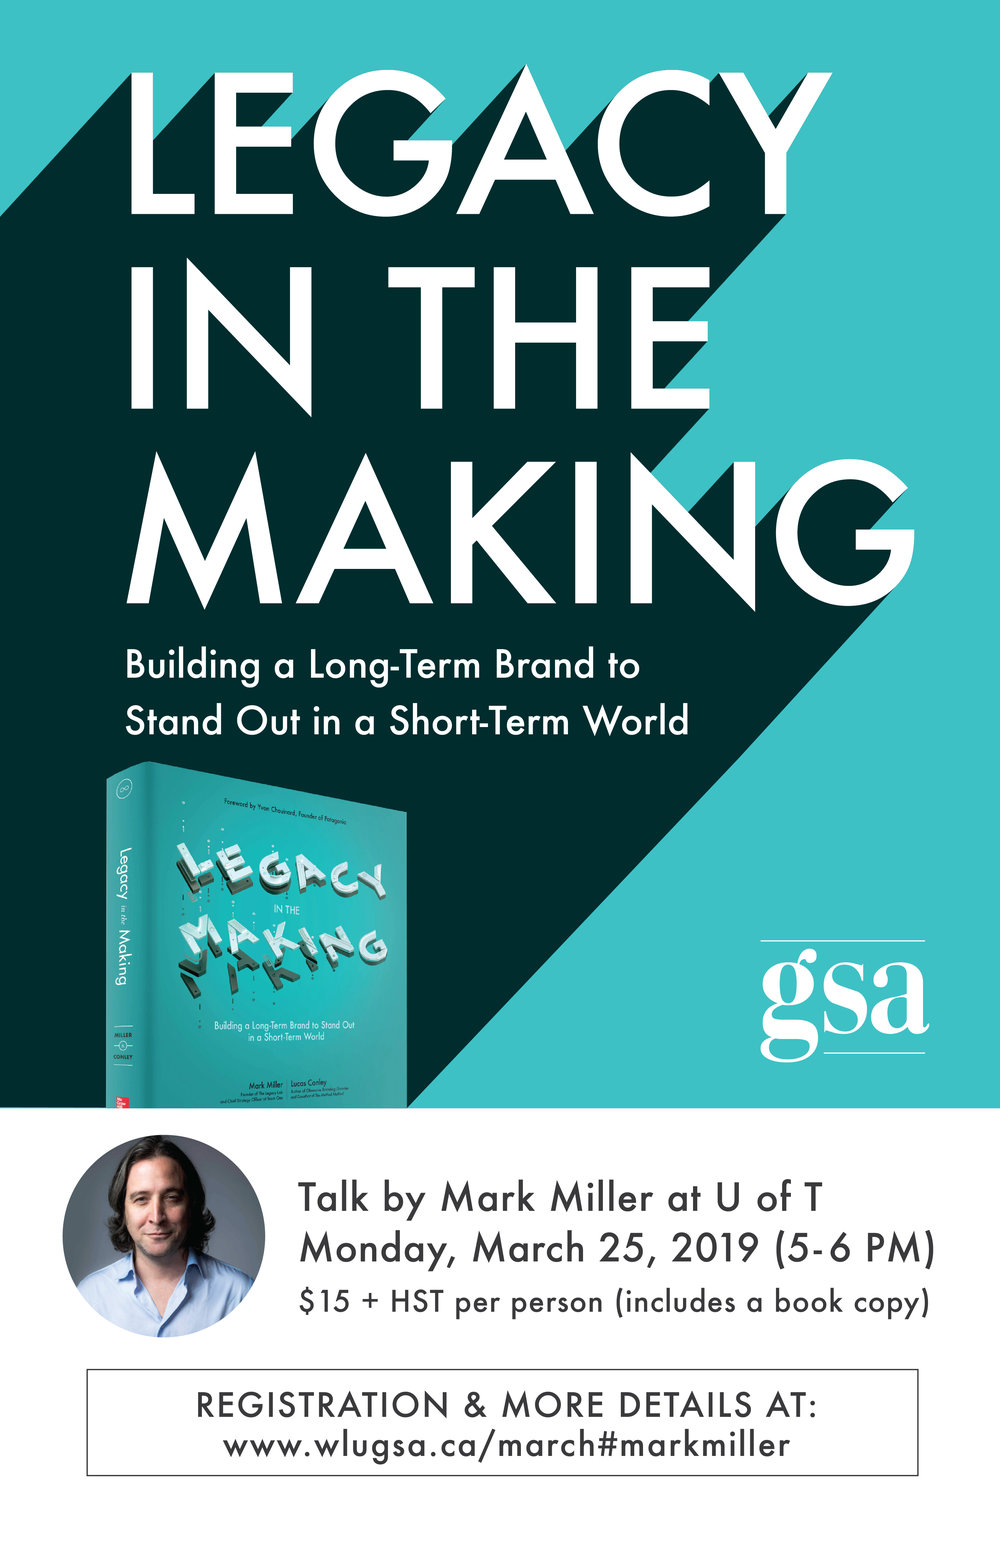 Legacy in the making: Building a long-term brand to stand out in a short-term world. Talk by Mark Miller at U of T. Monday, March 25, 2019 (5-6pm). $15 + HST person (includes a book copy). Registration below.